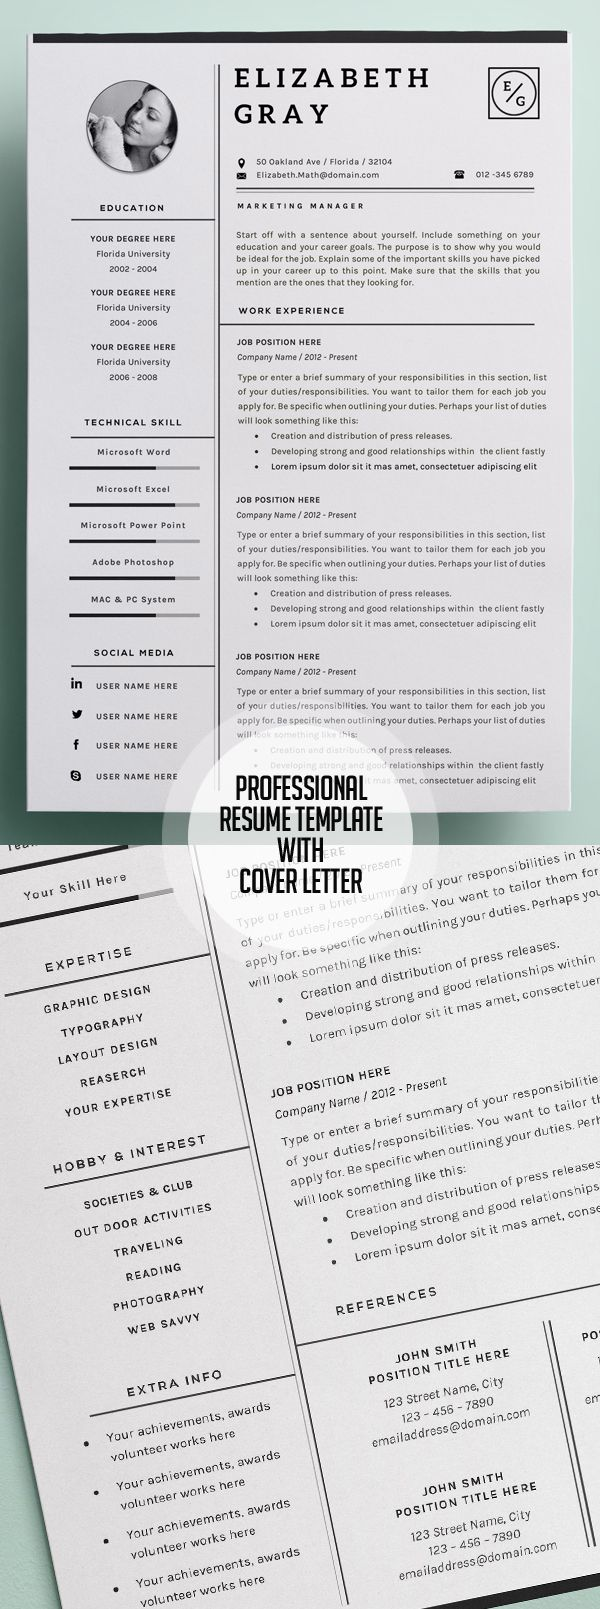 Opposenewapstandardsus  Outstanding  Resume Ideas On Pinterest  Resume Resume Templates And  With Great Professional And Modern Resume Template With Page Cover Cvtemplate With Easy On The Eye How To Write A Winning Resume Also What Should A Resume Cover Letter Look Like In Addition Paralegal Resume Samples And Qa Sample Resume As Well As Japanese Resume Additionally Resume Career Change From Pinterestcom With Opposenewapstandardsus  Great  Resume Ideas On Pinterest  Resume Resume Templates And  With Easy On The Eye Professional And Modern Resume Template With Page Cover Cvtemplate And Outstanding How To Write A Winning Resume Also What Should A Resume Cover Letter Look Like In Addition Paralegal Resume Samples From Pinterestcom